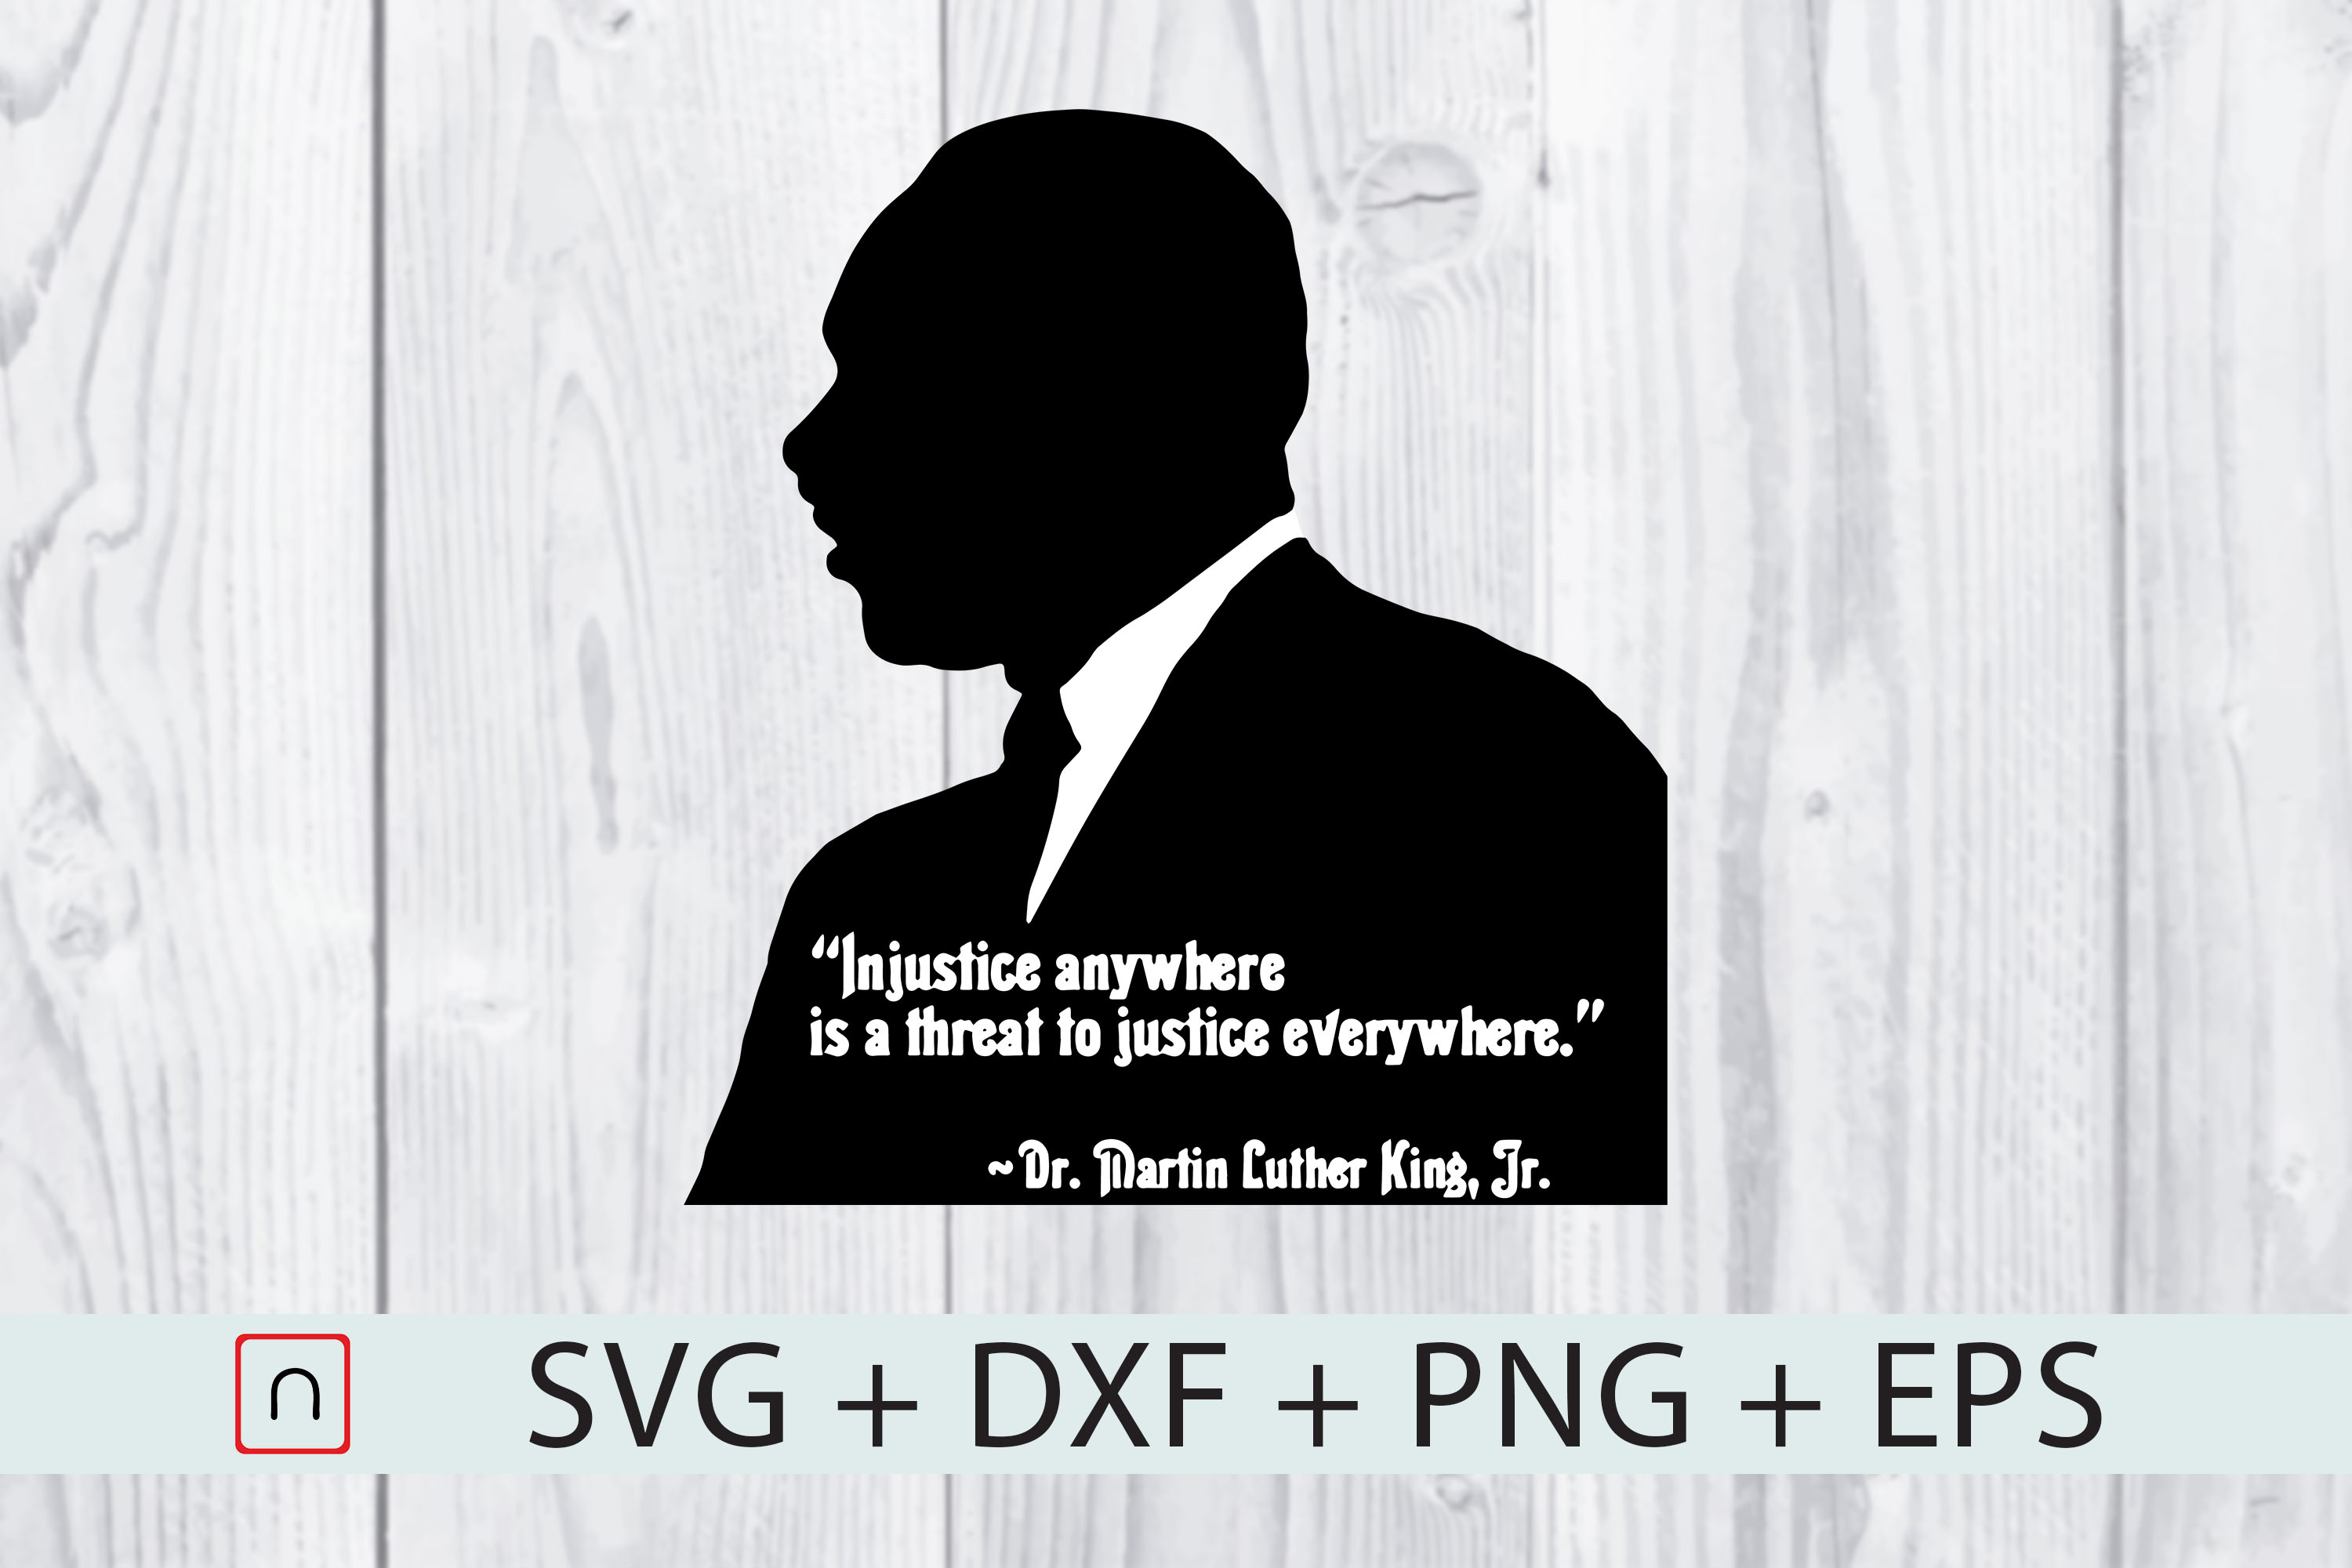 Download Free Injustice Anywhere Martin Luther King Jr Graphic By Novalia for Cricut Explore, Silhouette and other cutting machines.